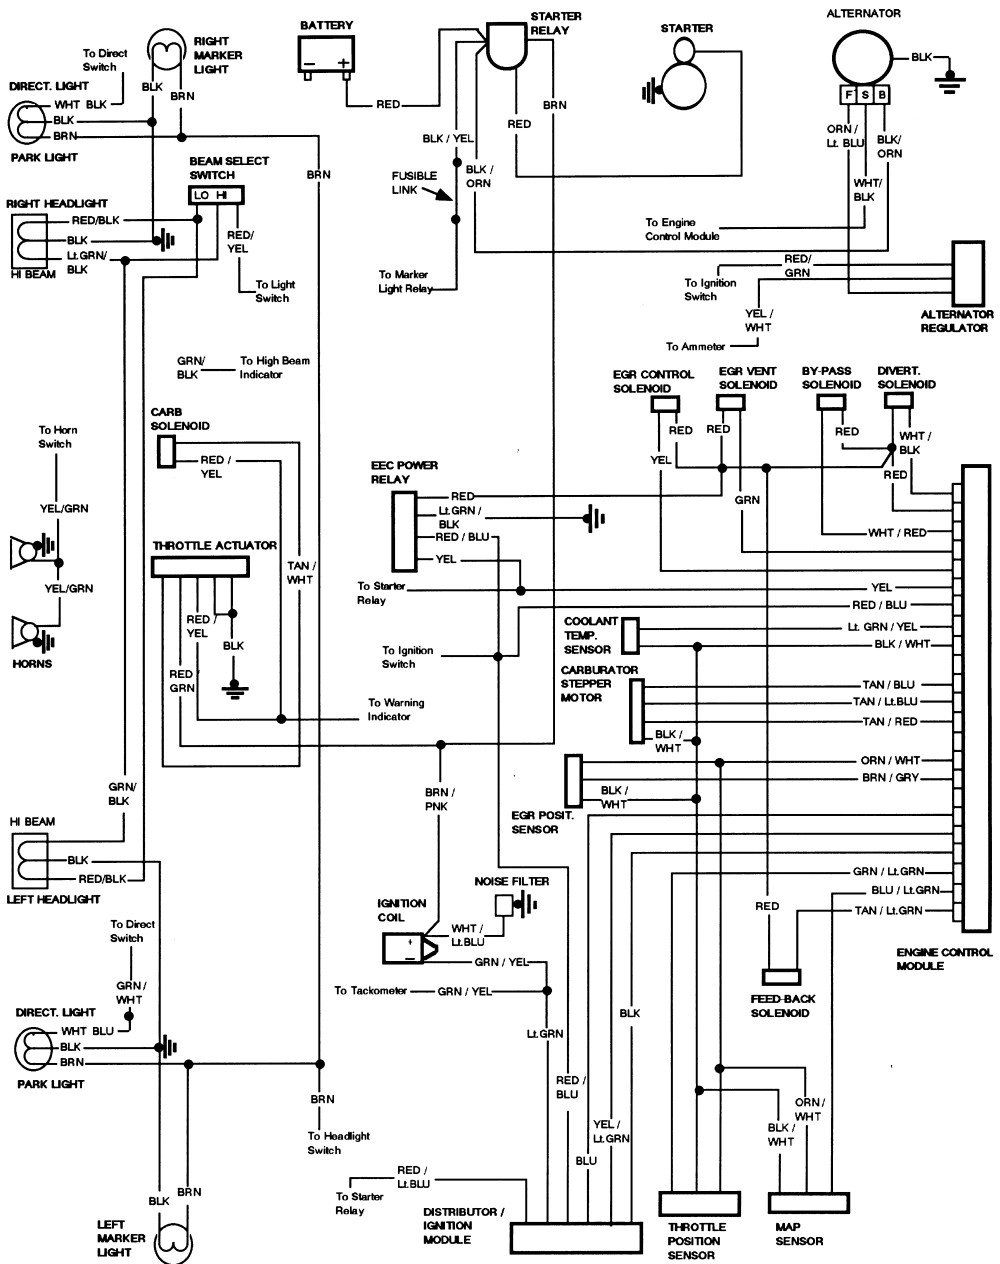 Ford F350 Wiring Diagram Free Wiring Diagram Collection For Ford F350 Wiring Diagram Free Ford Truck Ford F150 Ford